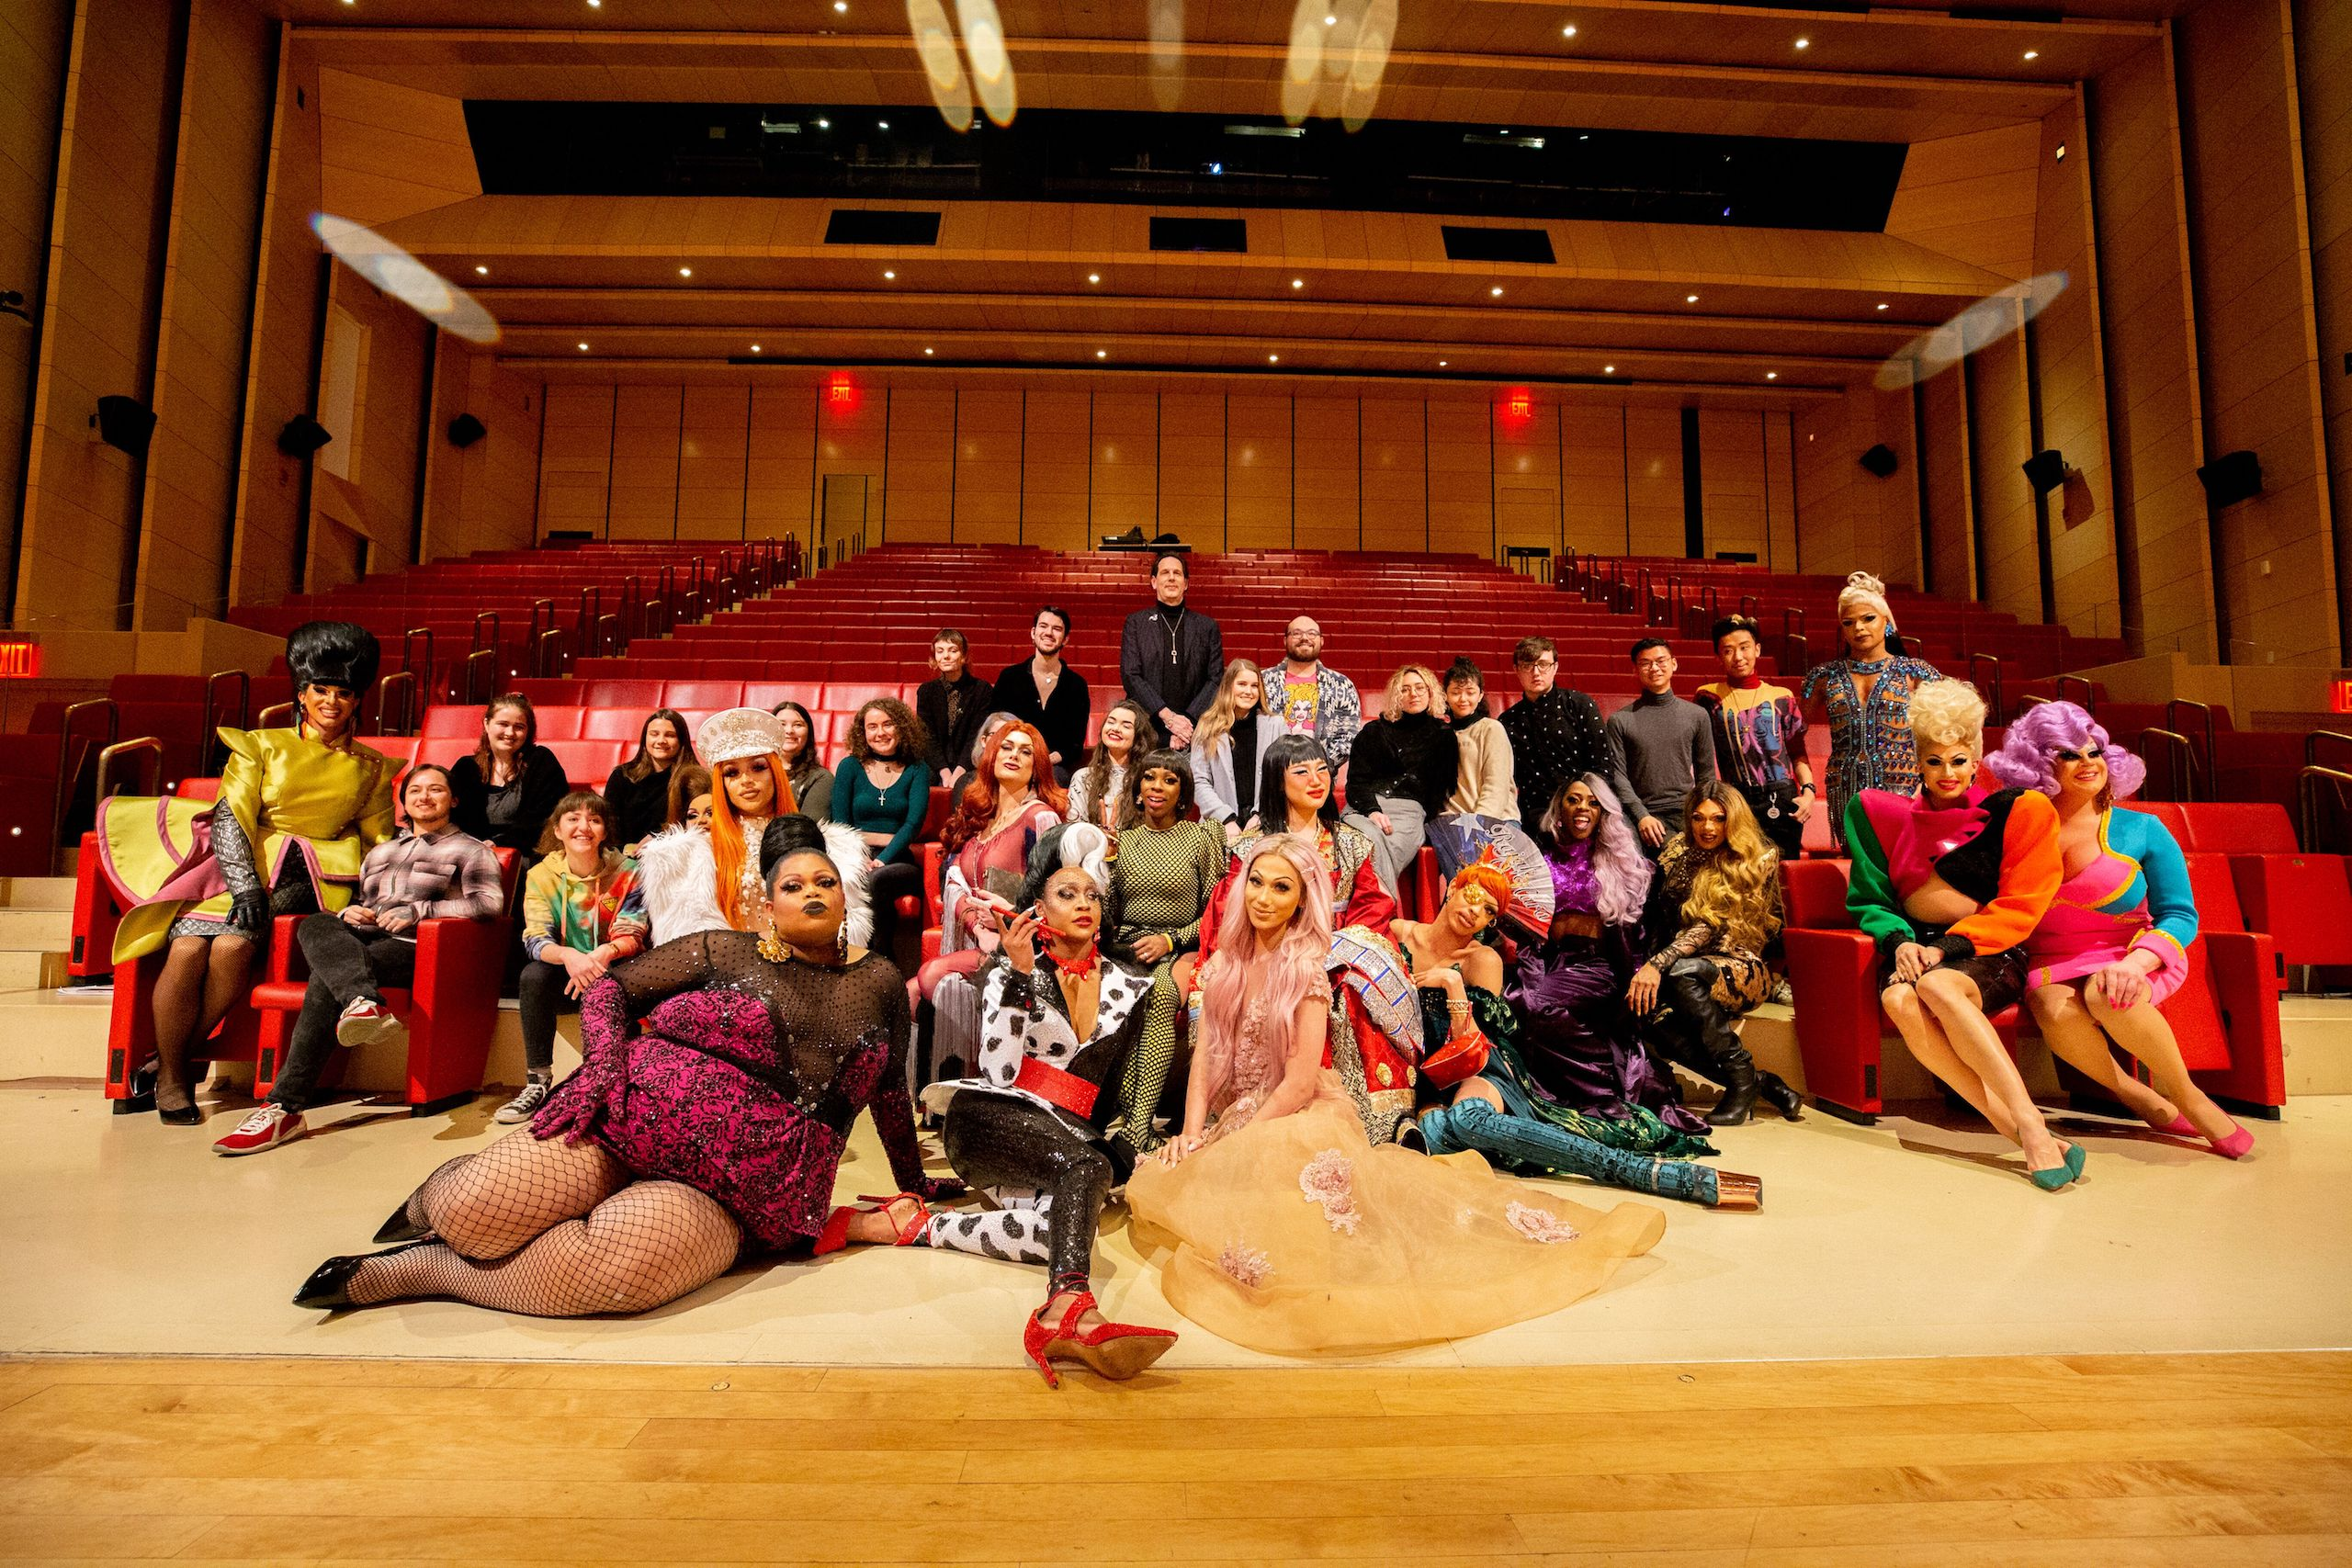 In RuPaul's Drag Race and Its Impact, undergraduate students are using the show as a means to explore our society